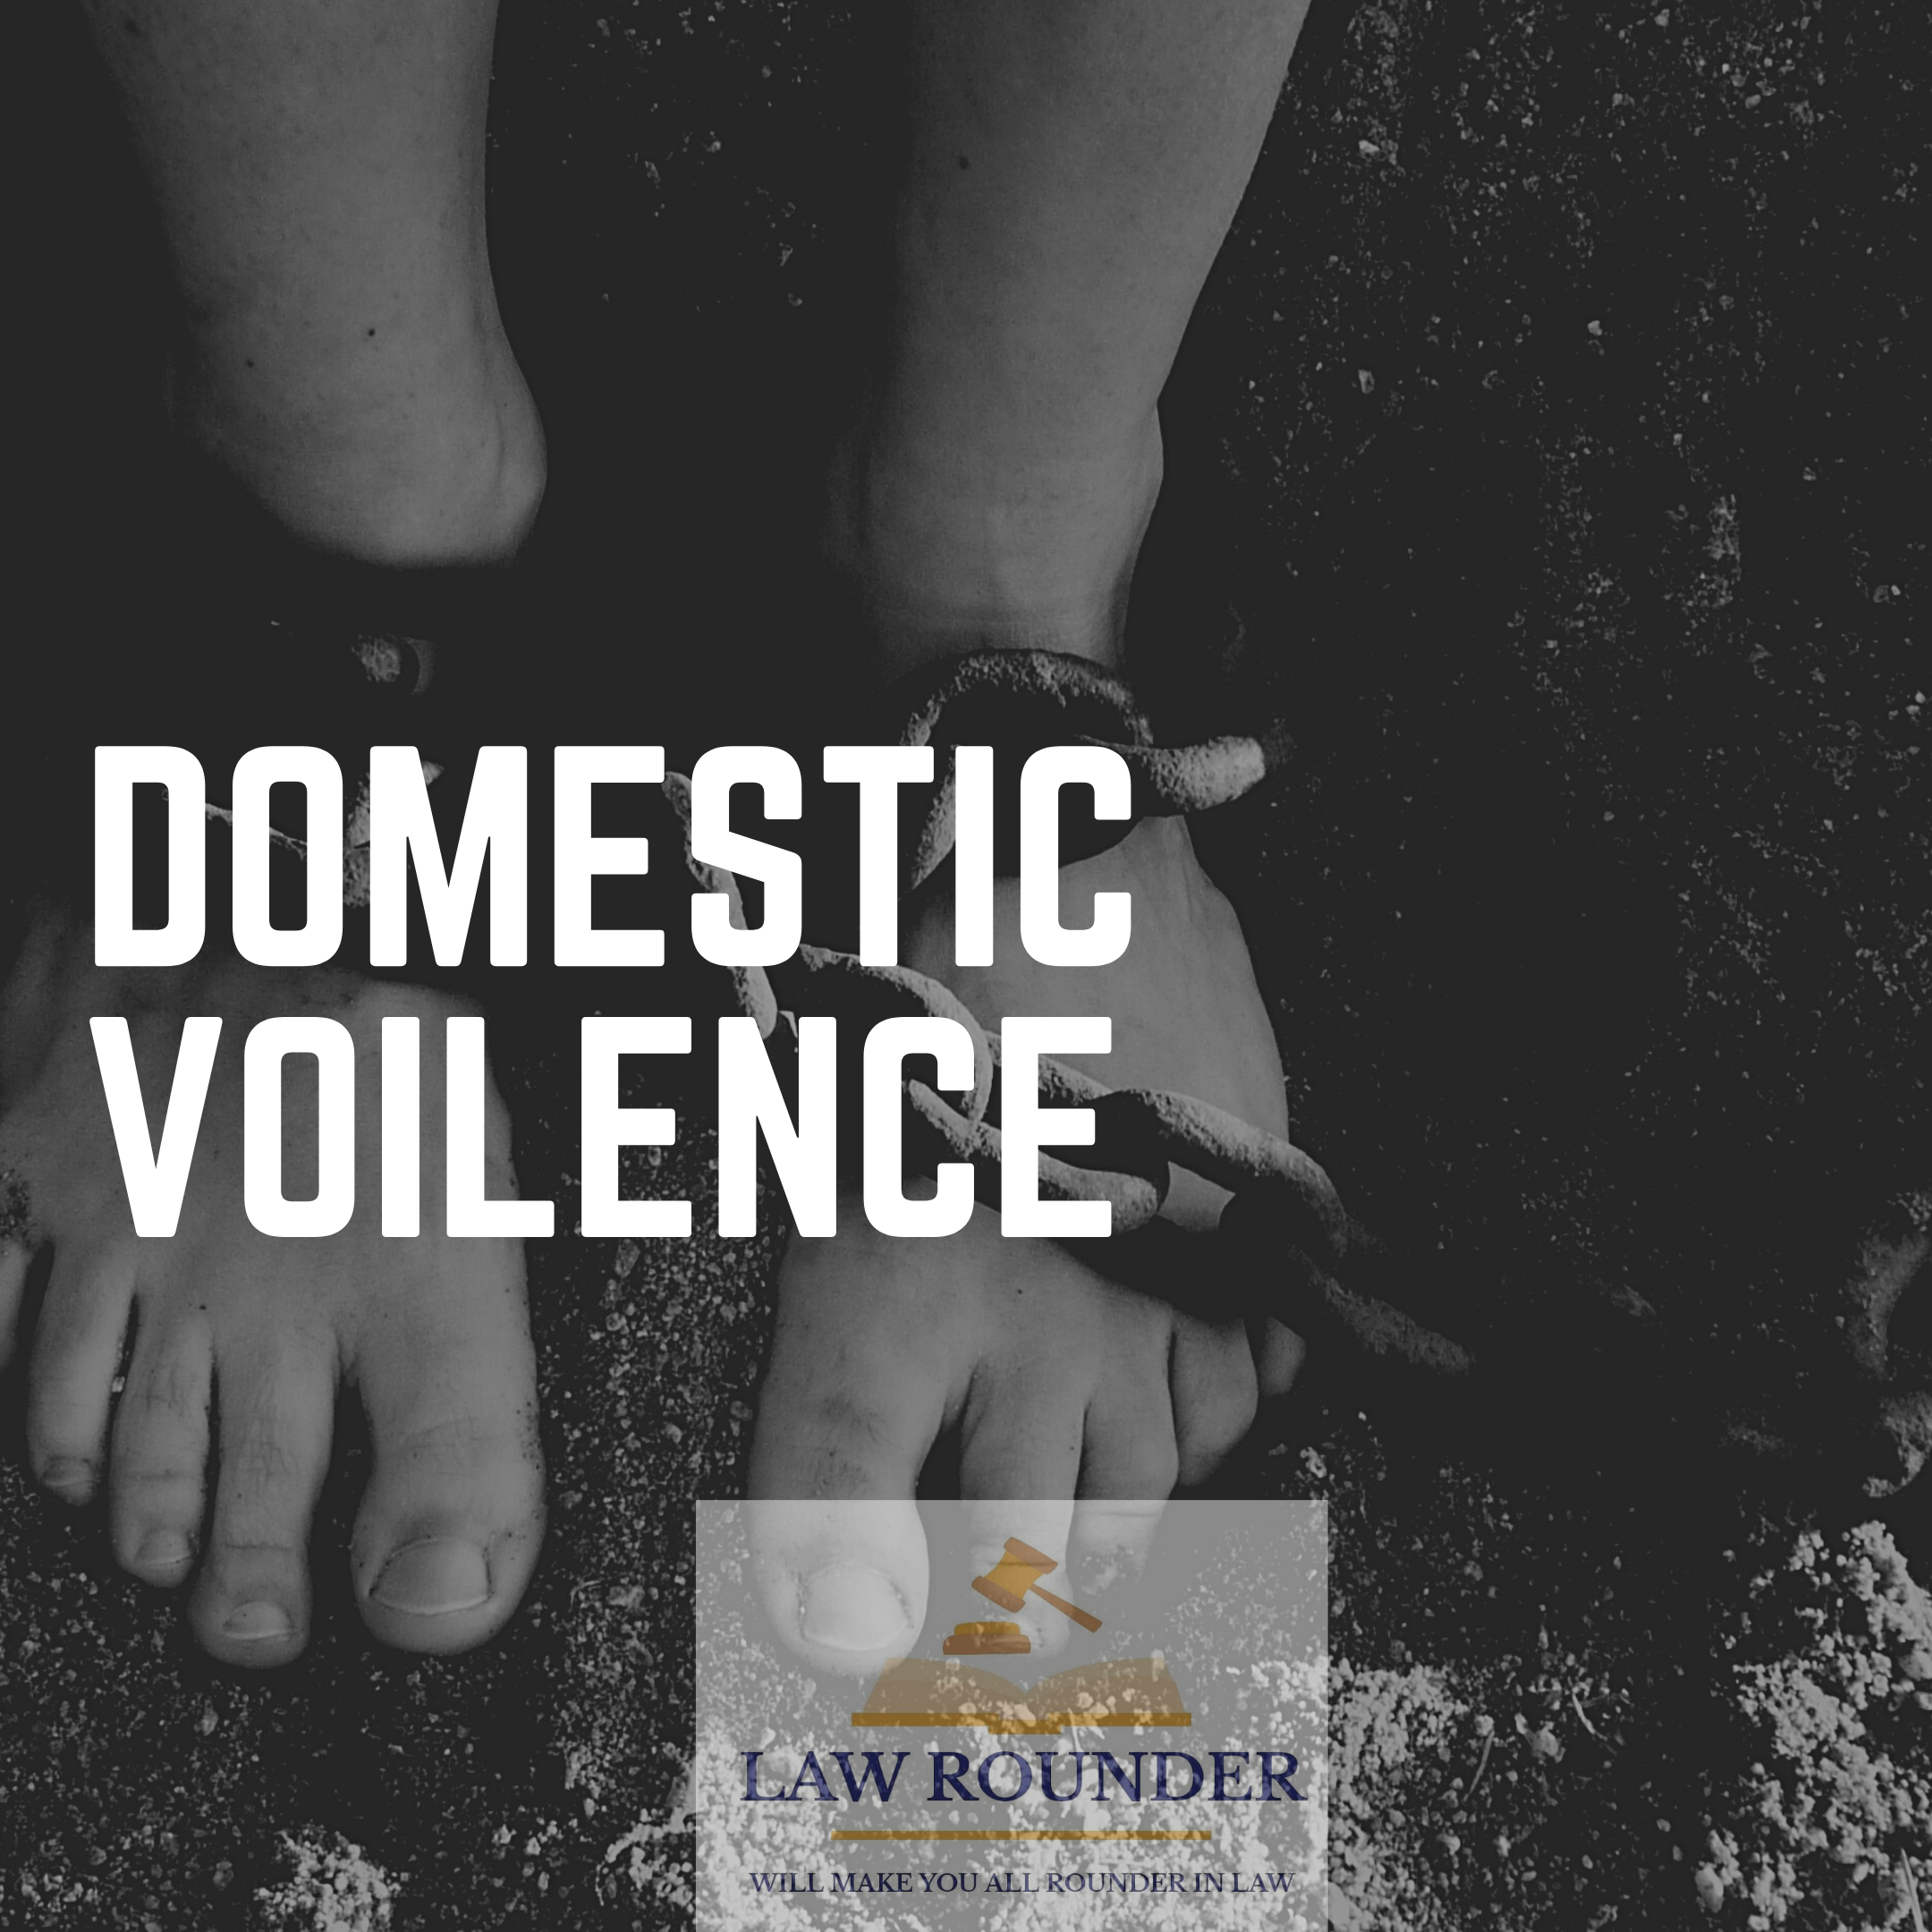 Domestic violence in pandemic